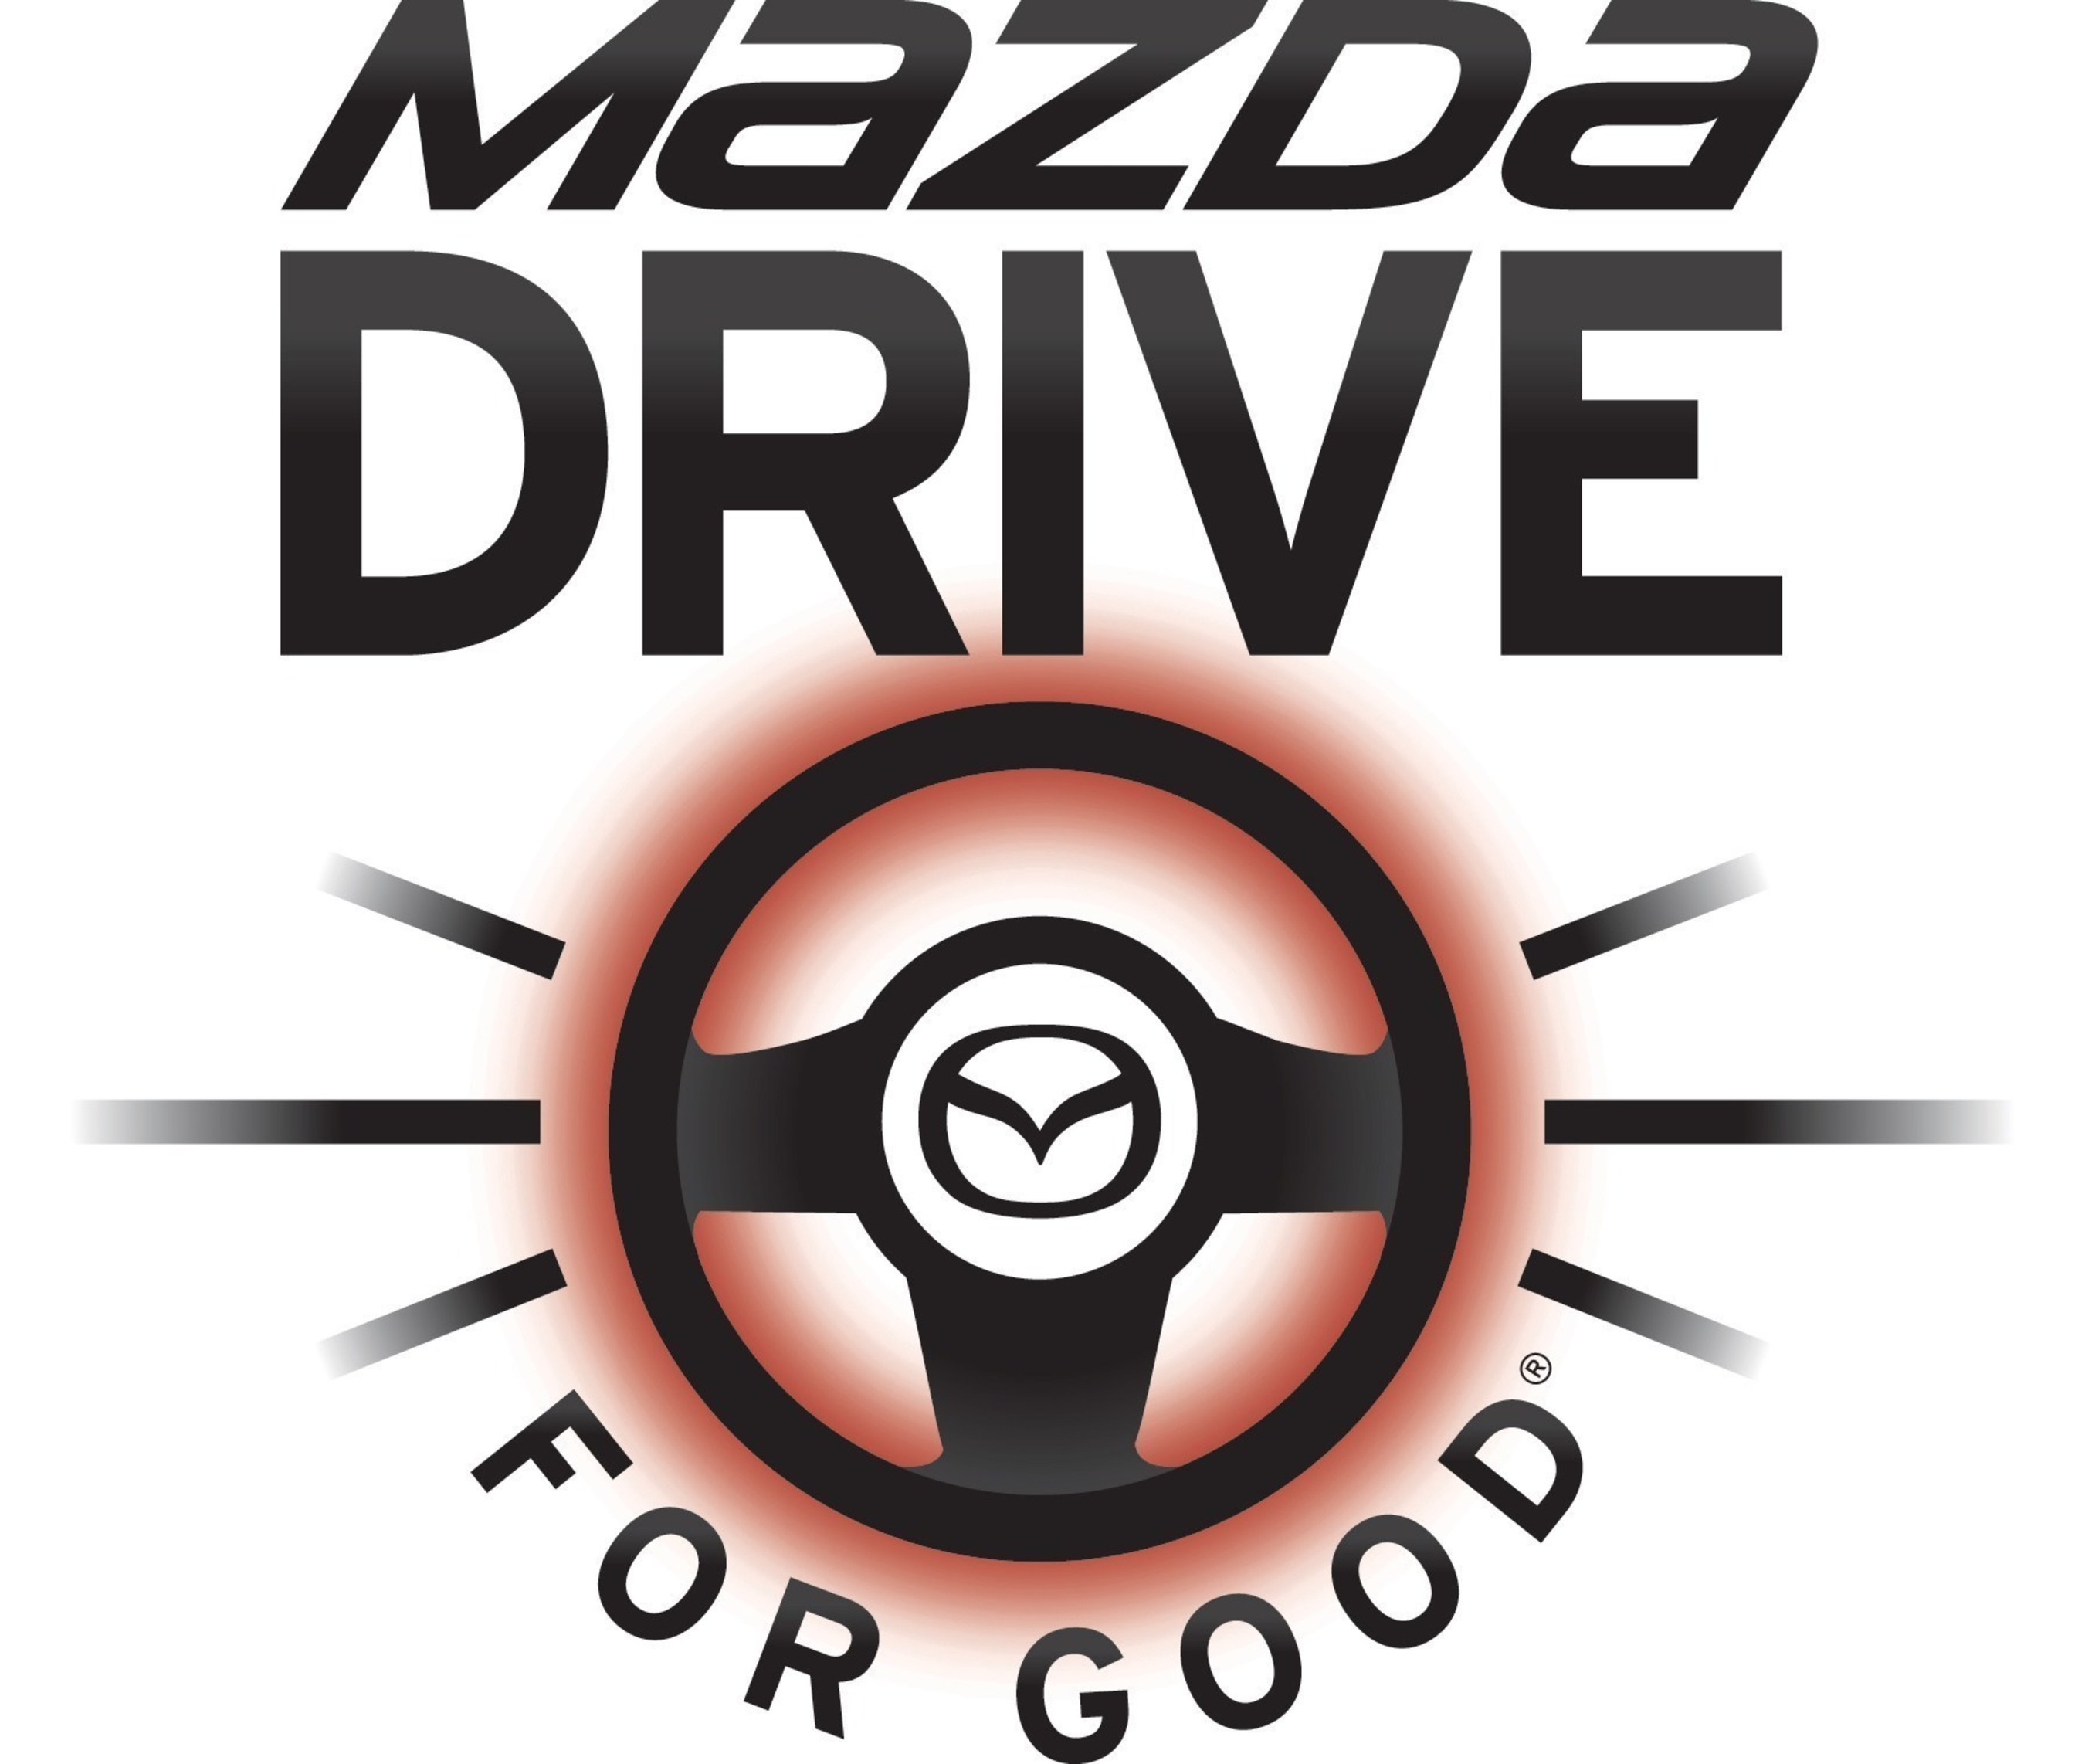 Holiday Season Signals Start of 2016 Mazda Drive for Good Event